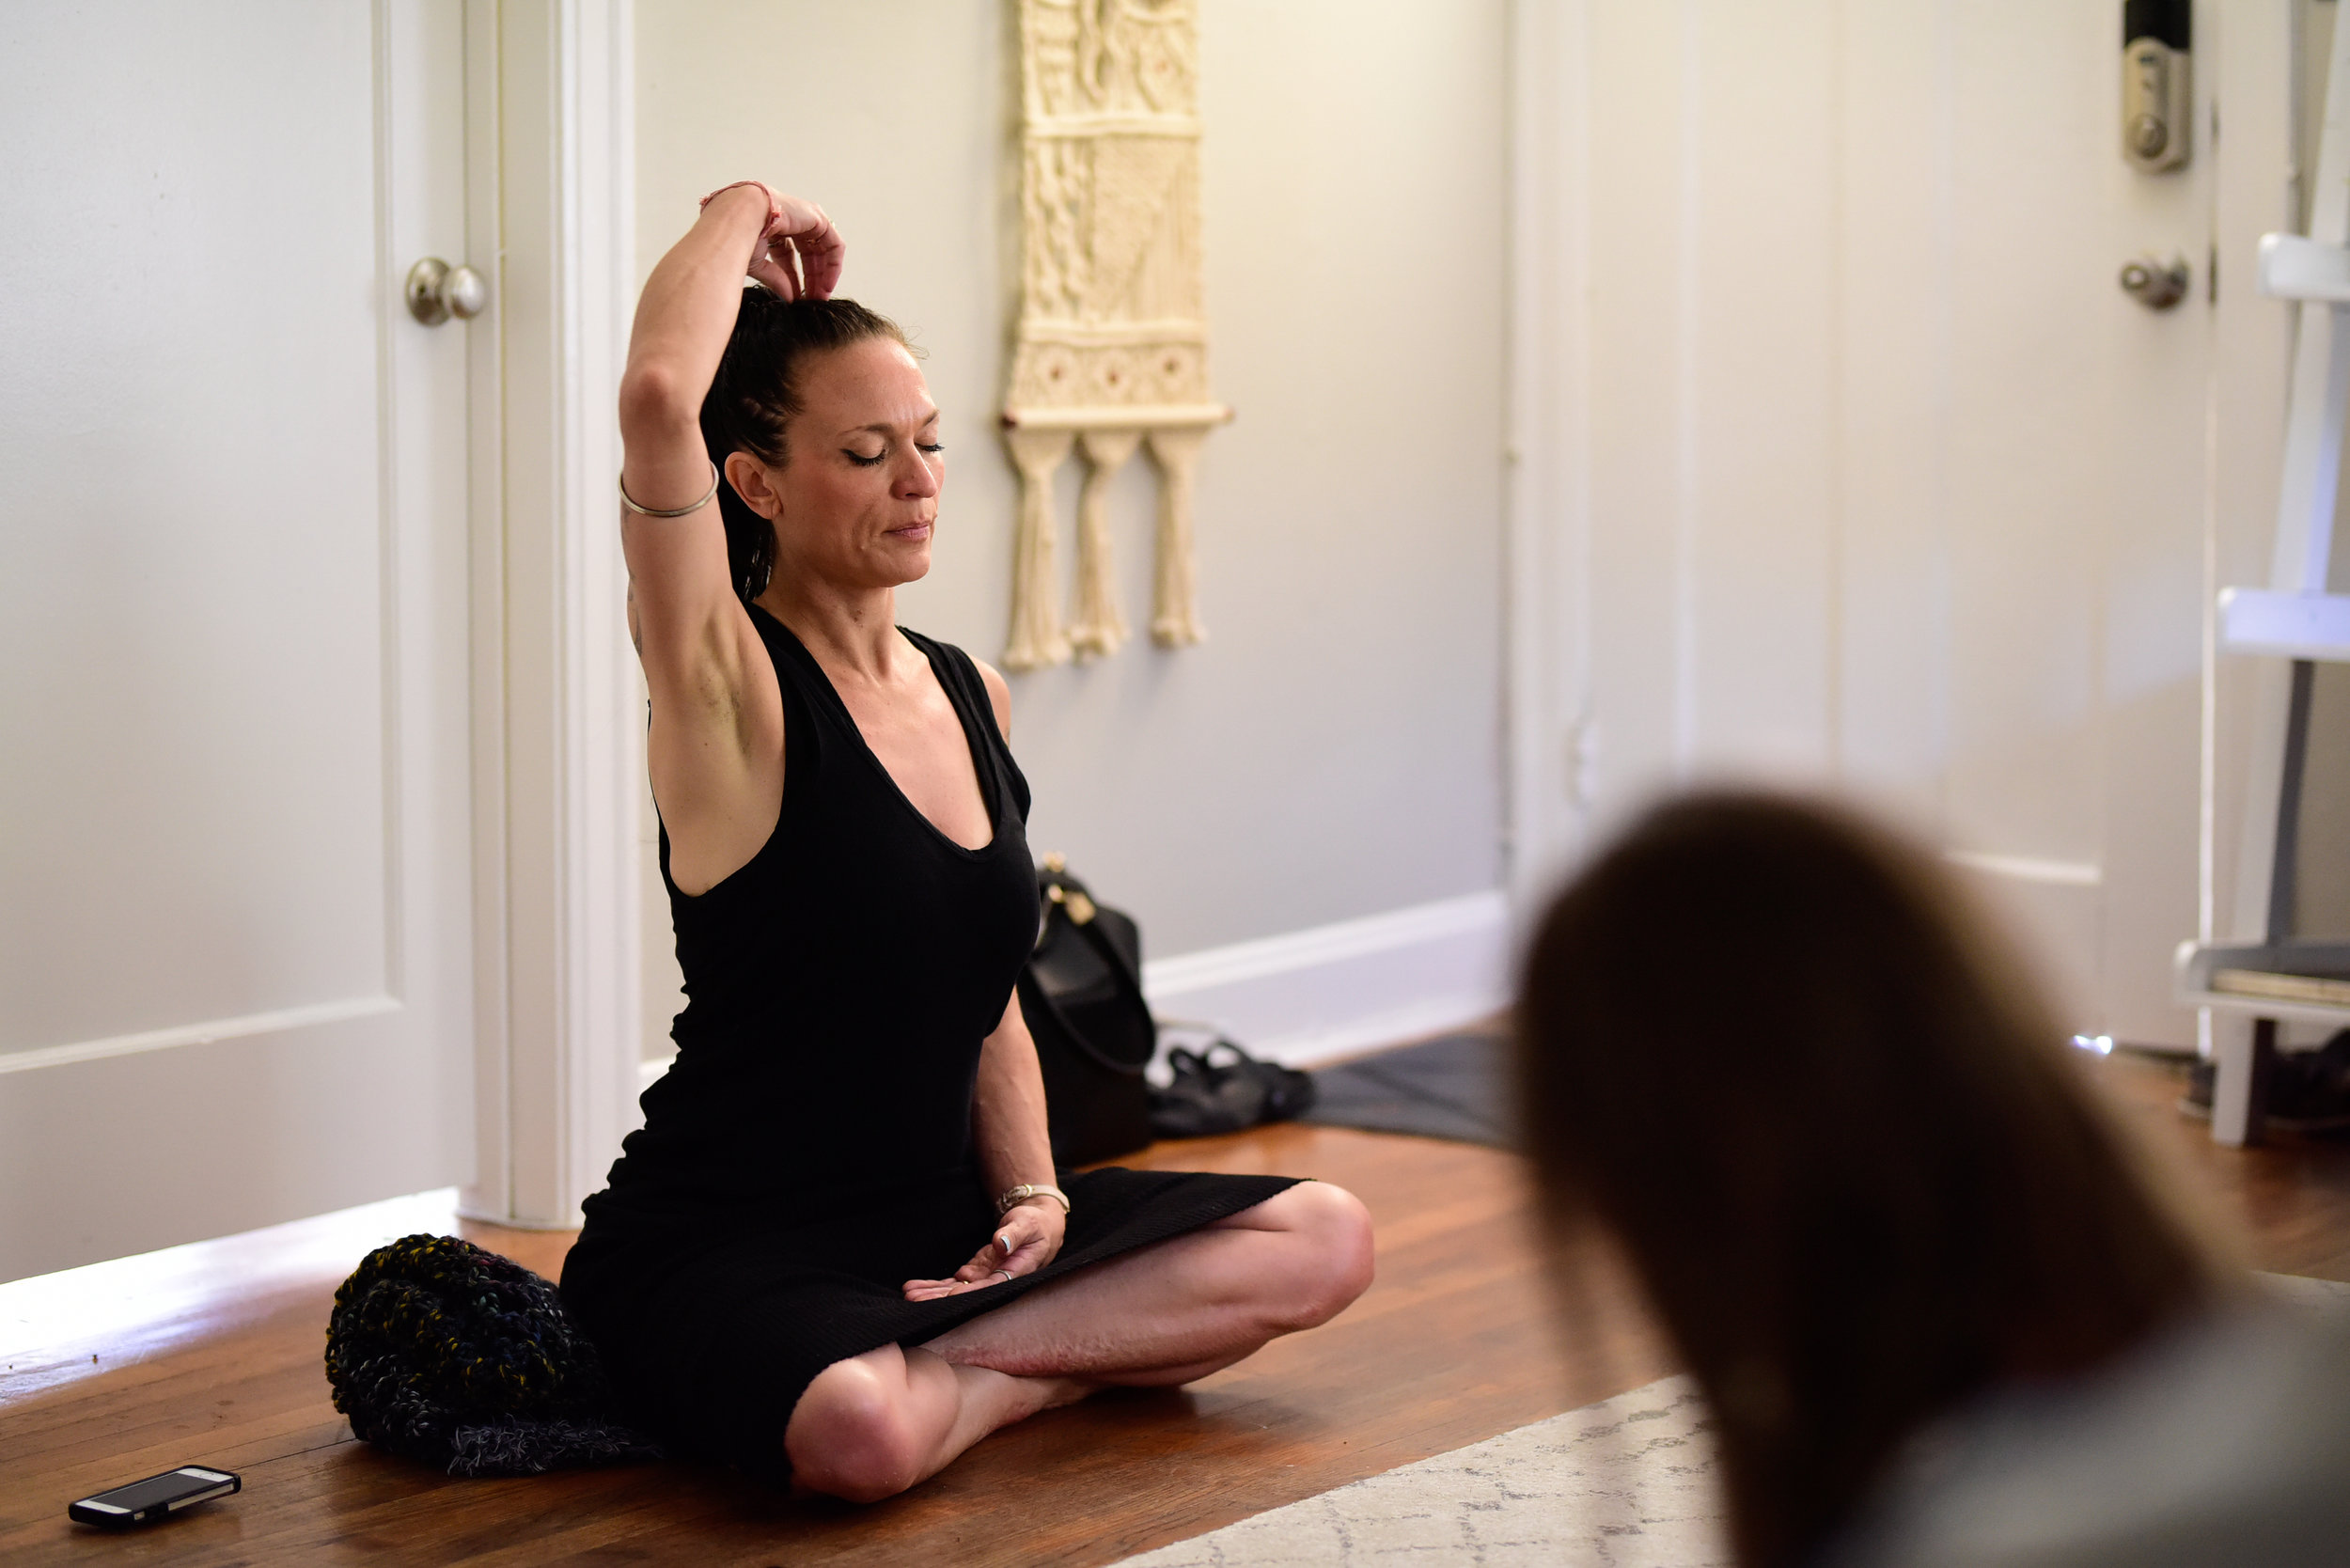 """Activation of the Pineal - Learn hand modes & (re)birth pointsBRING IN YOUR SPIRIT""""Margaret's extensive knowledge and training combined with her personal experience and deeply compassionate heart make her a gifted healer whom I highly recommend."""" -- Michelle"""